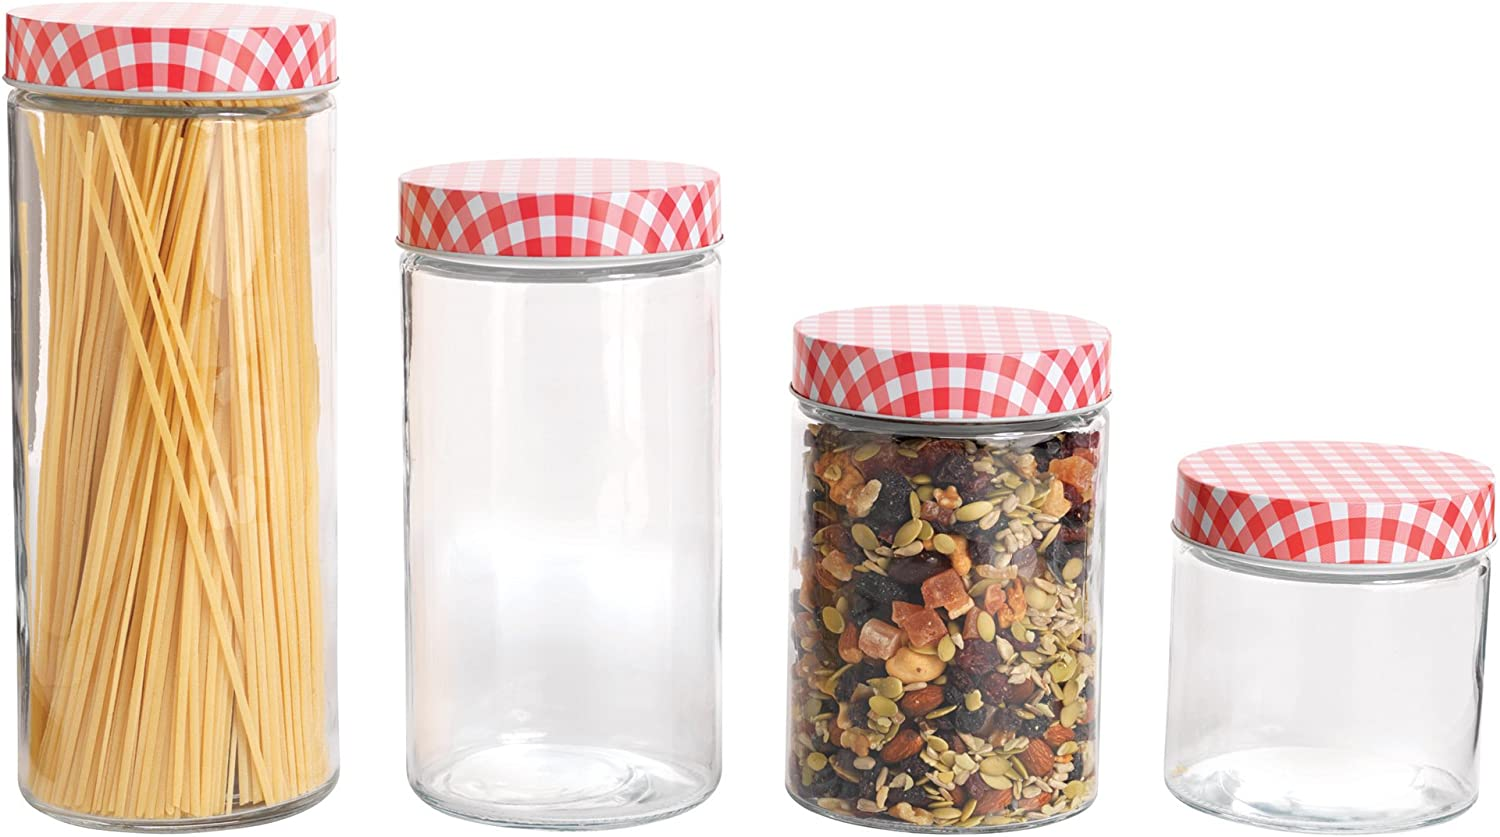 Anchor Hocking 4 Piece Glass Cylinder Jar Set with Gingham Lids, Clear/Red: Kitchen & Dining